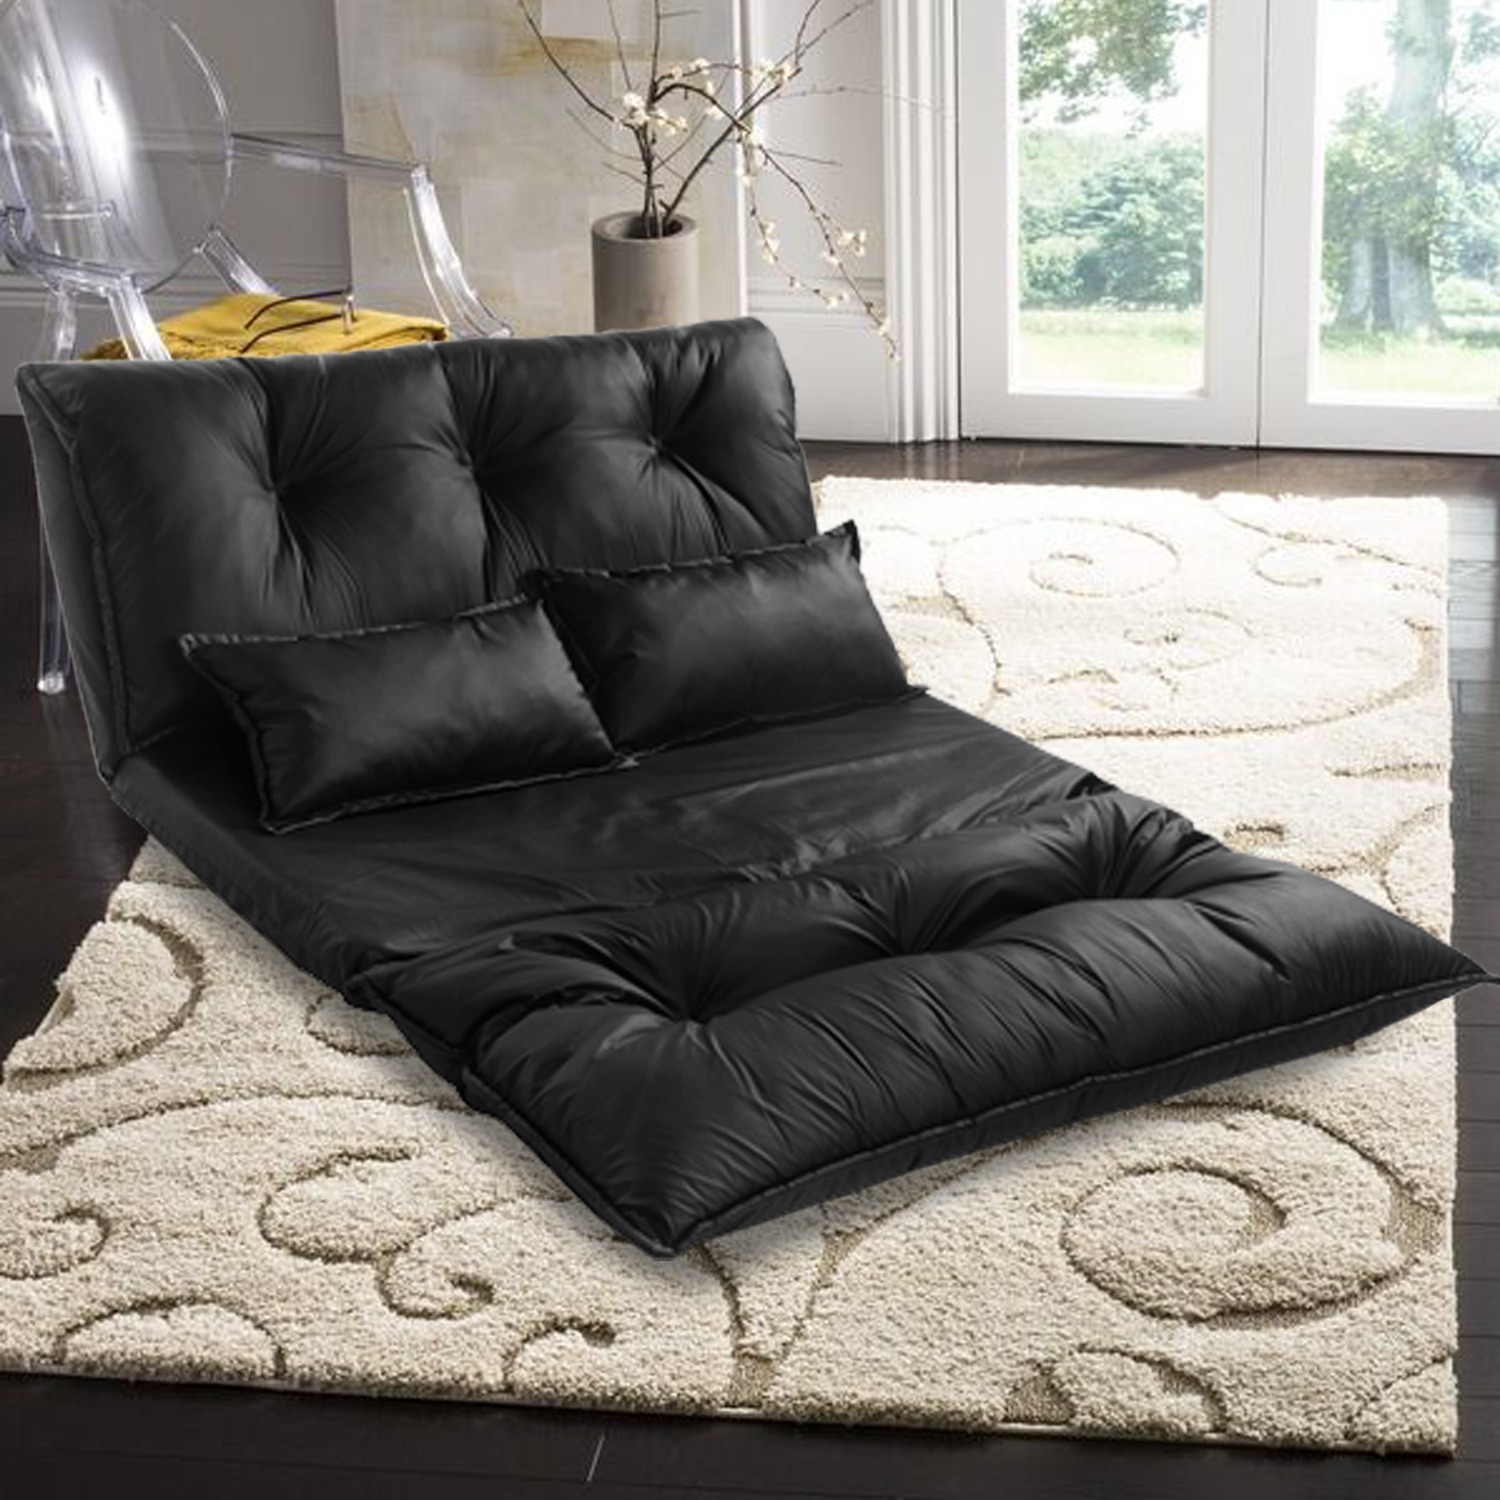 Pu Leather Sofa Bed For Bedroom, Futon Sofa Beds With 2 Inside Lounge Sofas And Chairs (View 5 of 15)